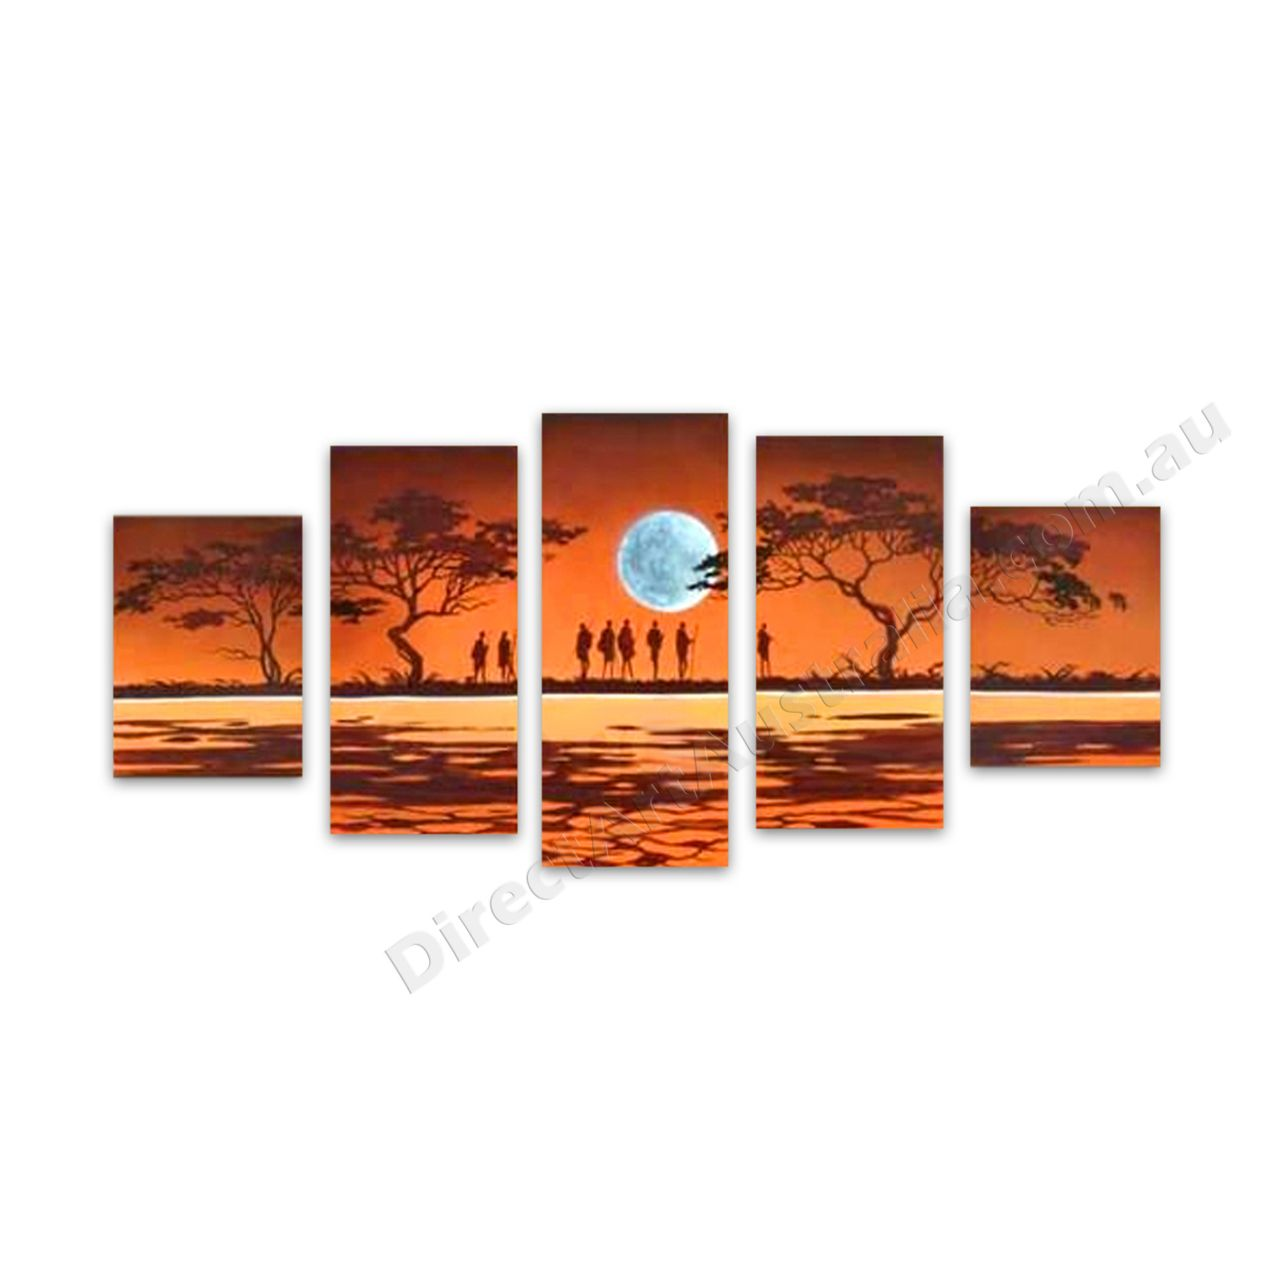 Blue moon wall art australia african art and canvases